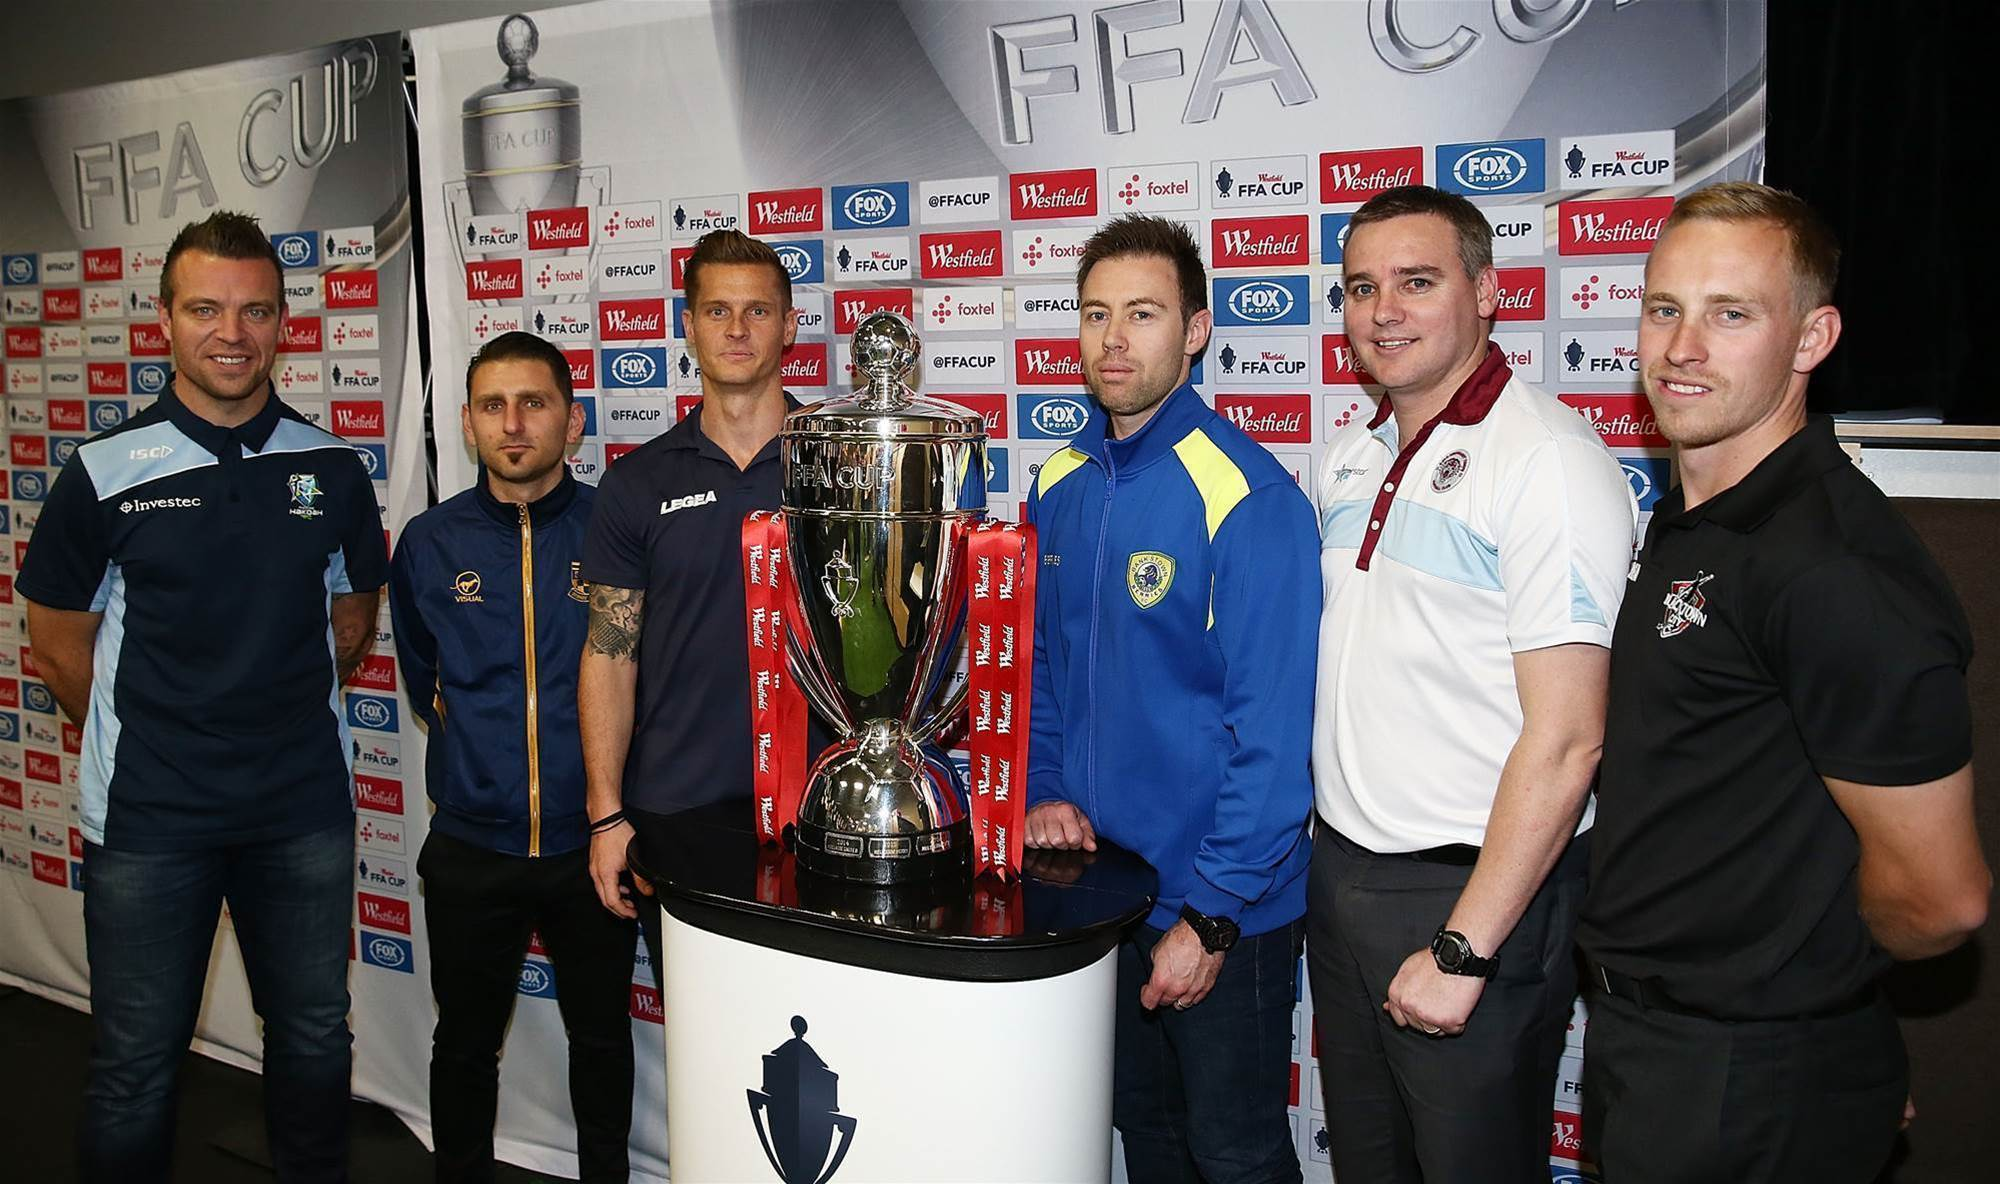 FFA Cup Round of 32 draw pic special